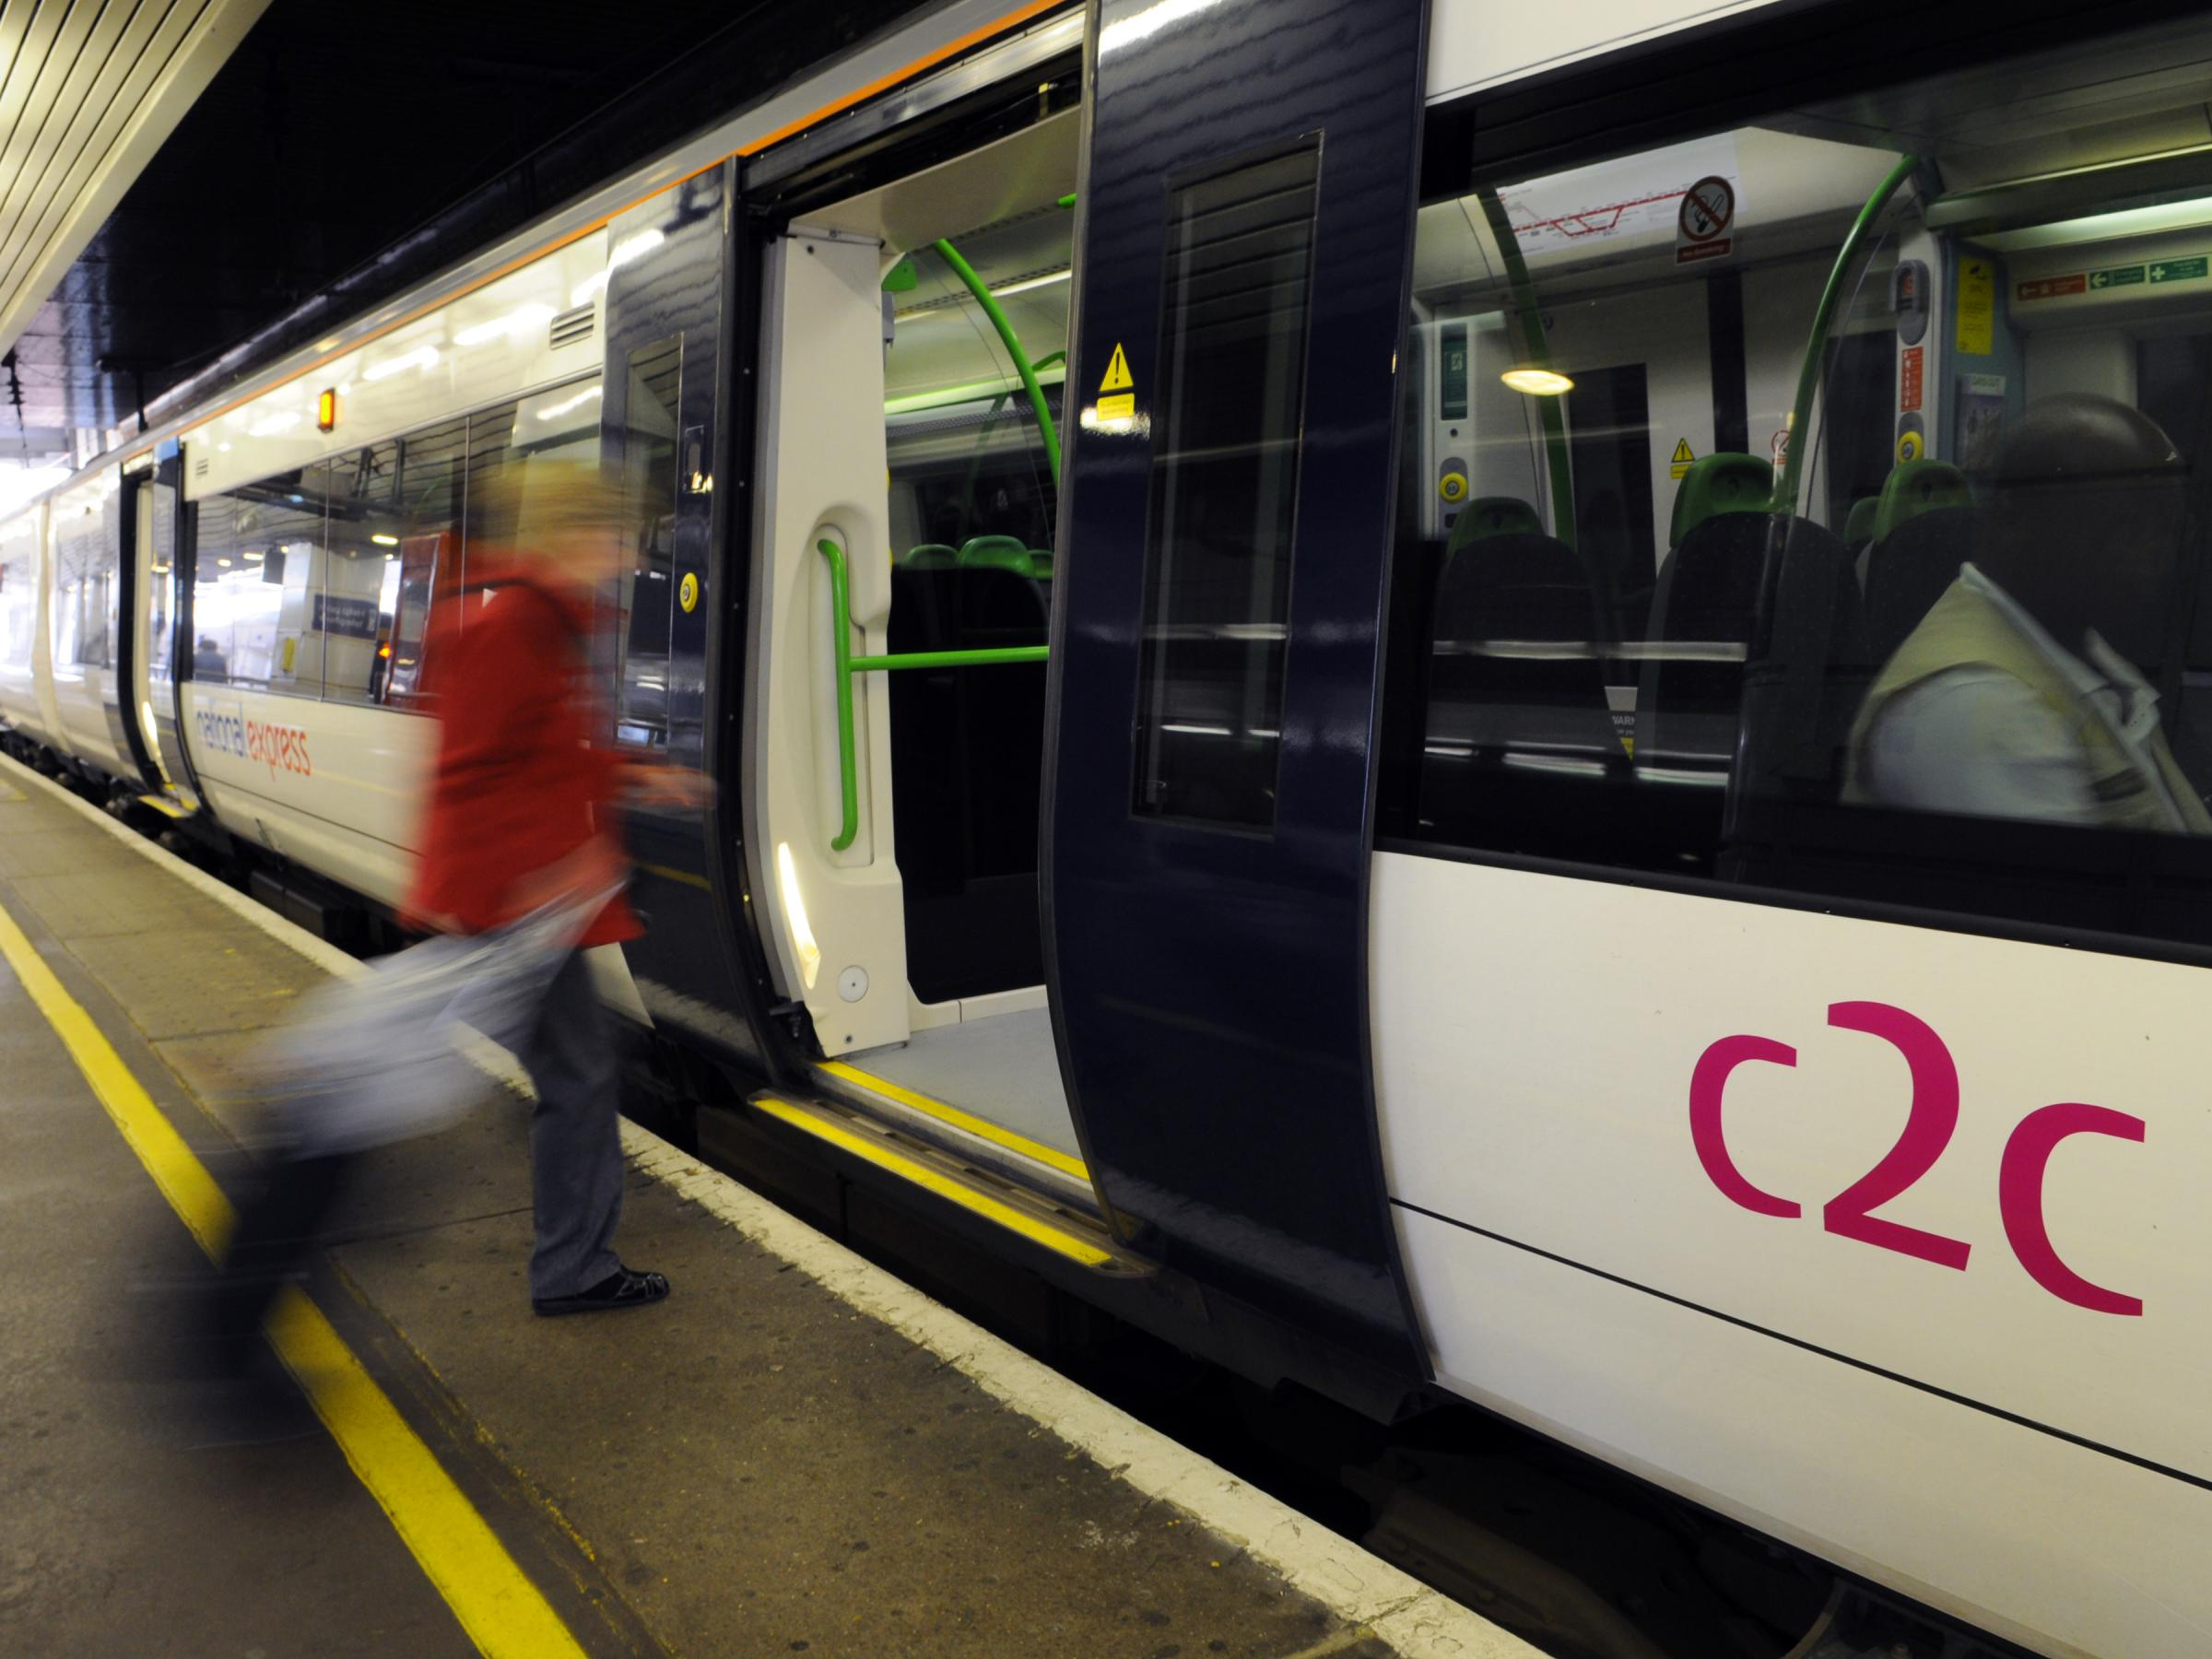 c2c commuters face three months of misery